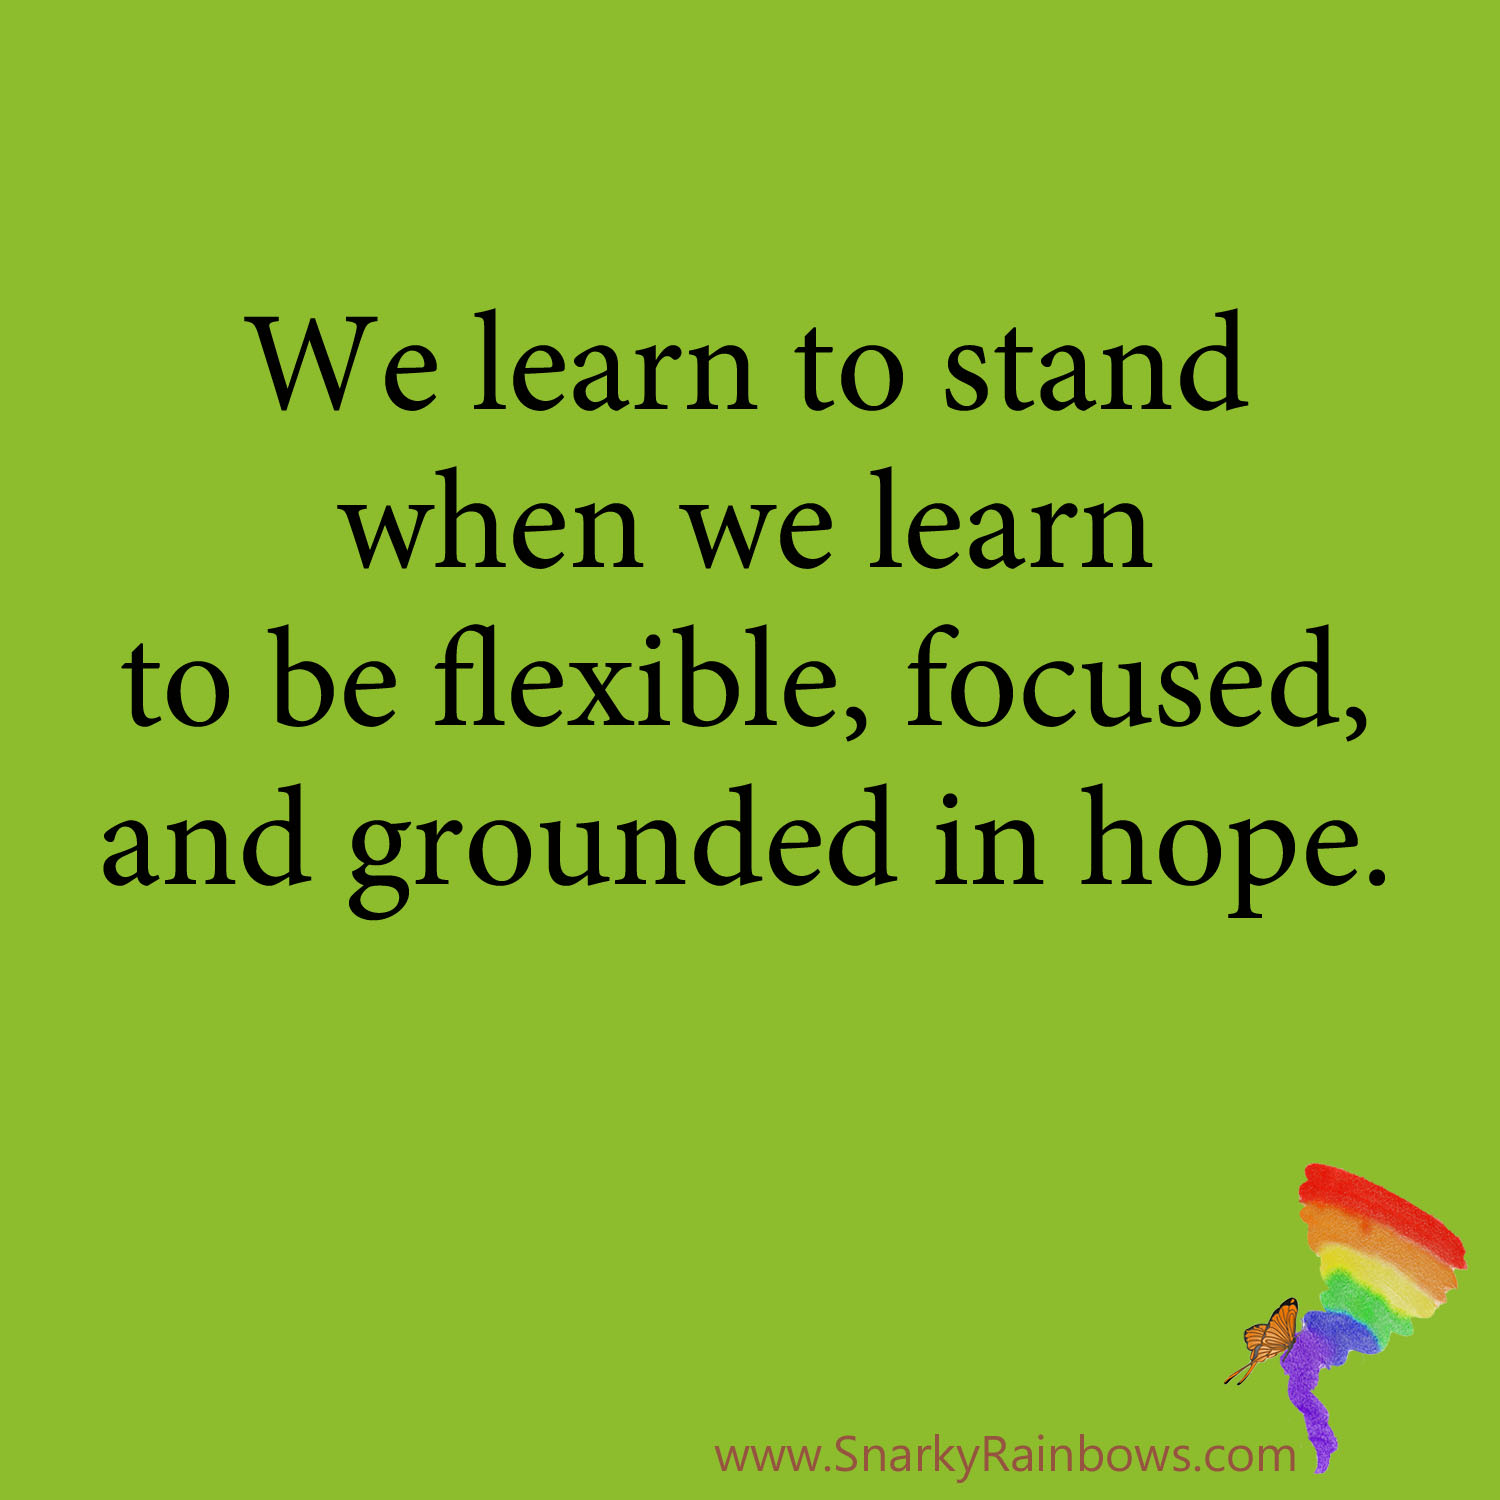 Growing HOPE Daily - quote - learn to stand